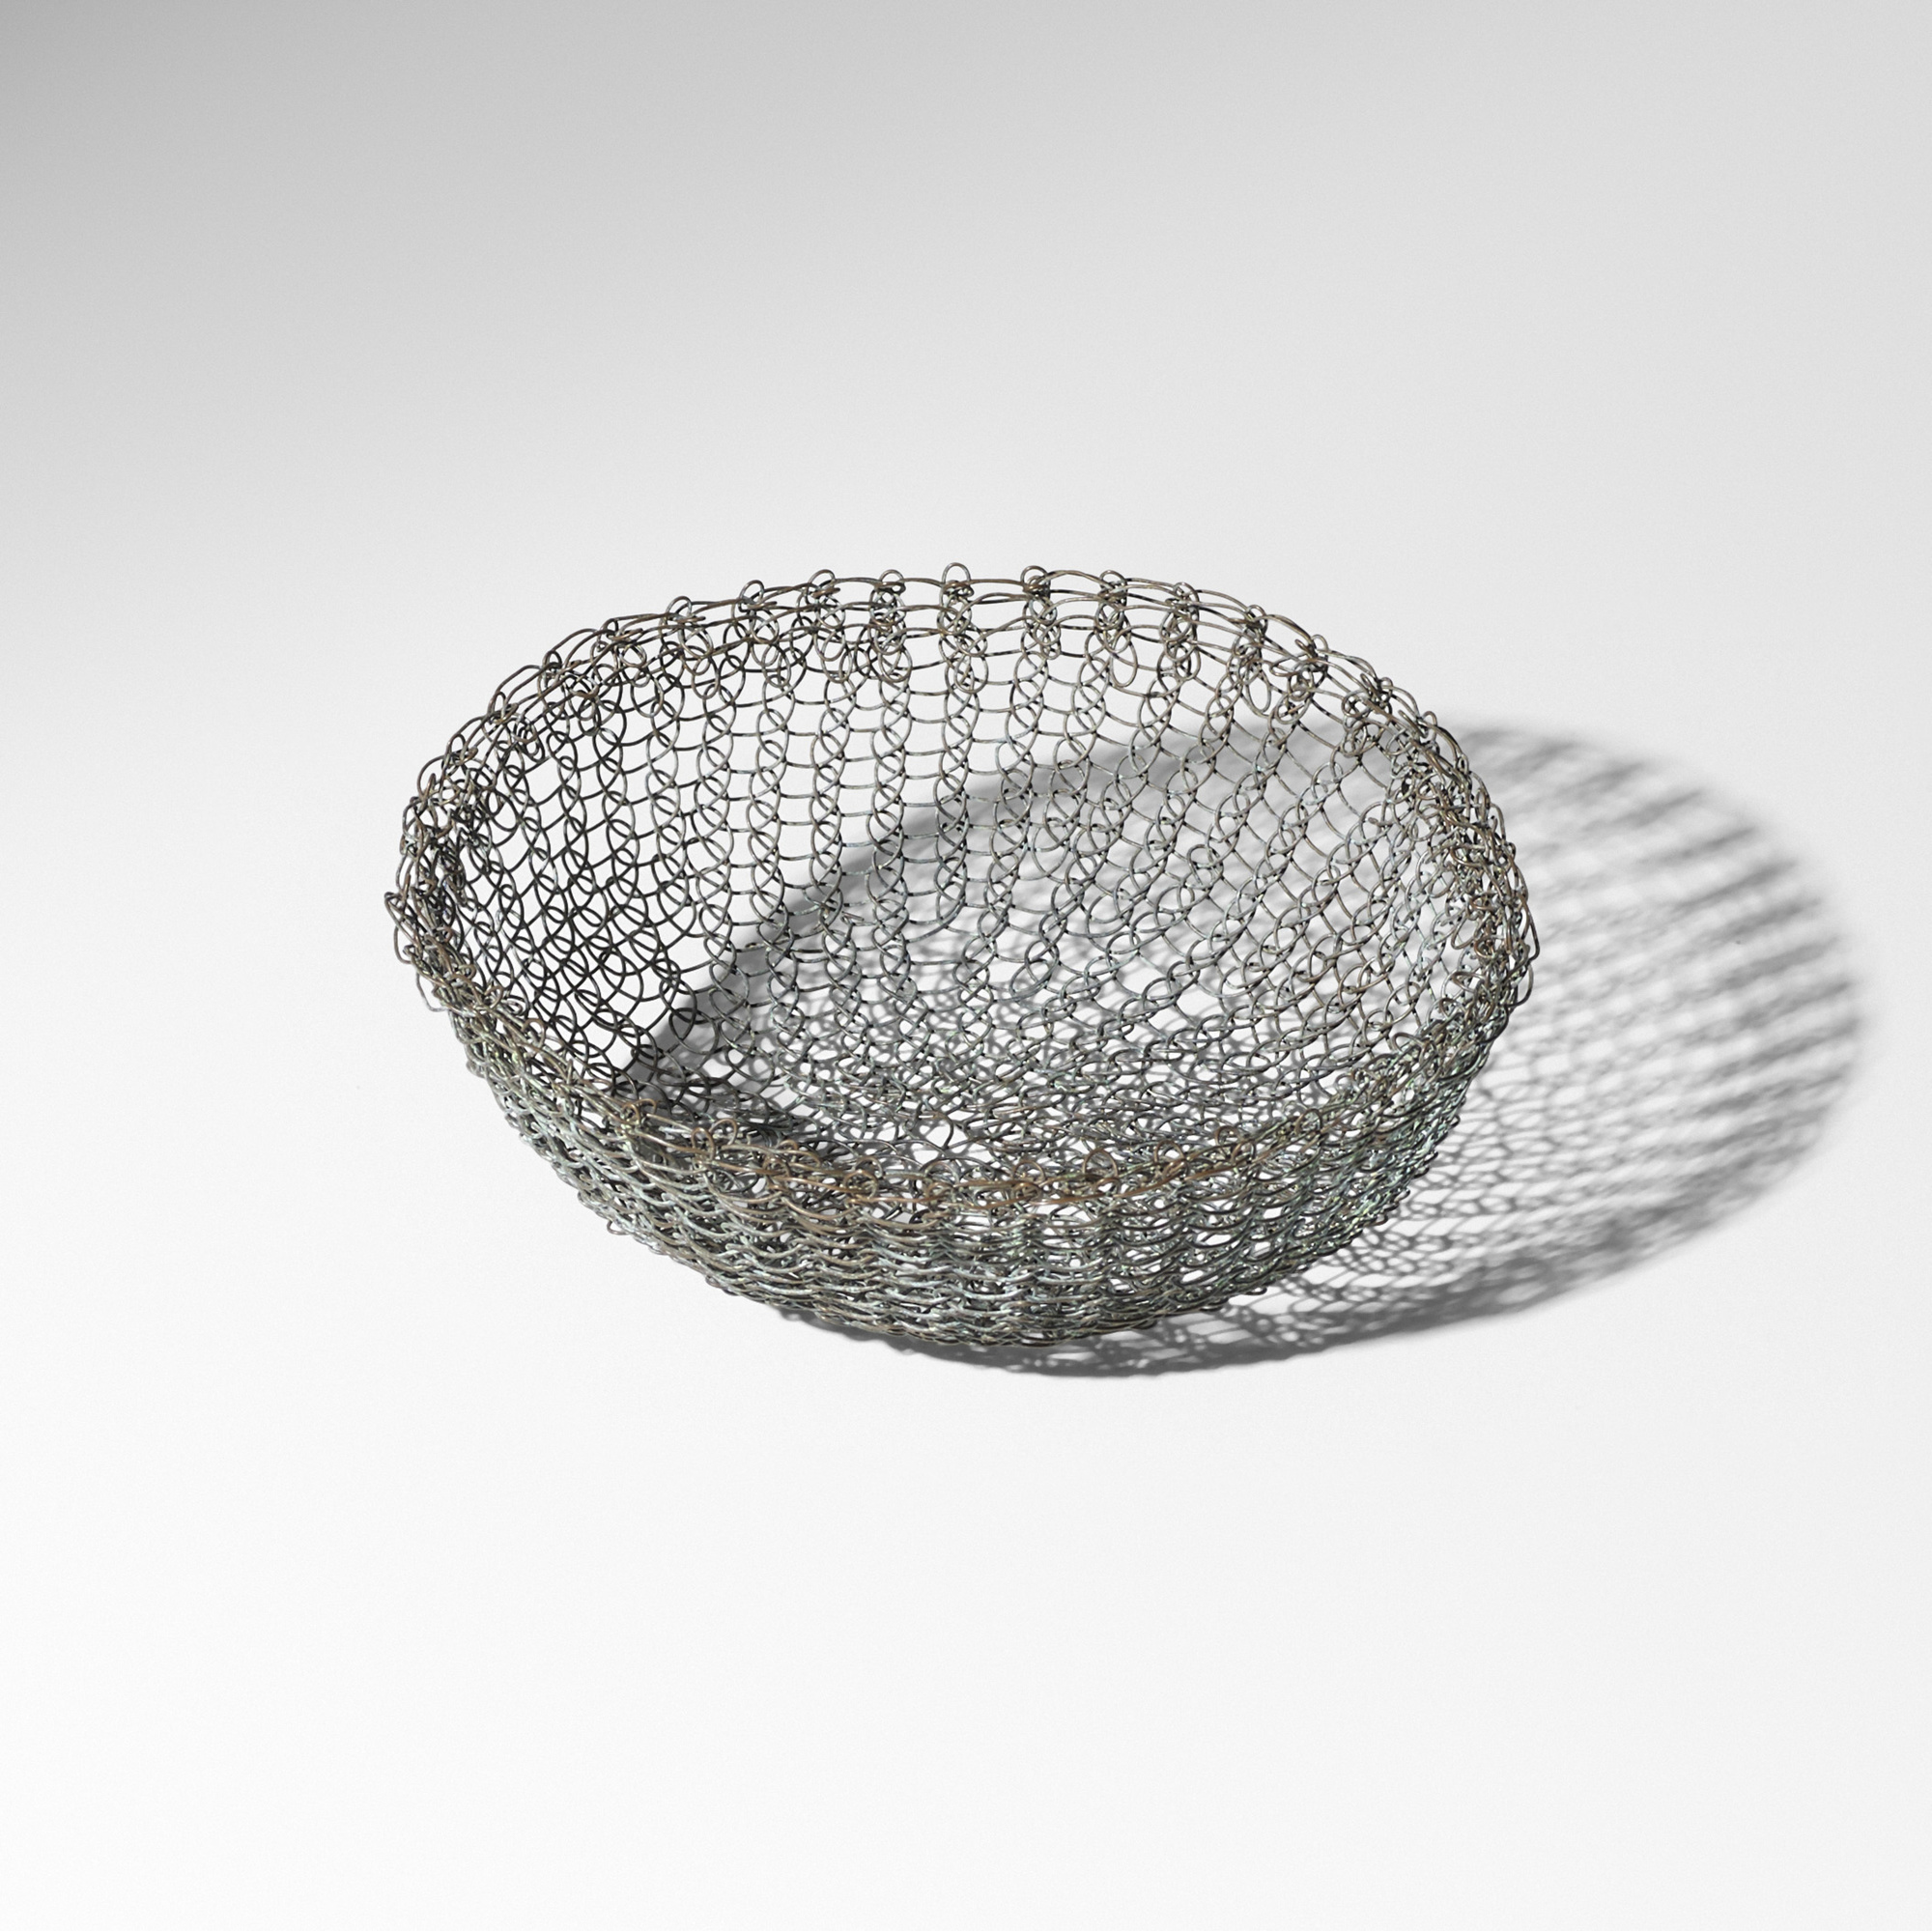 115: RUTH ASAWA, Untitled (S.364 Basket form) < Art + Design, 24 ...